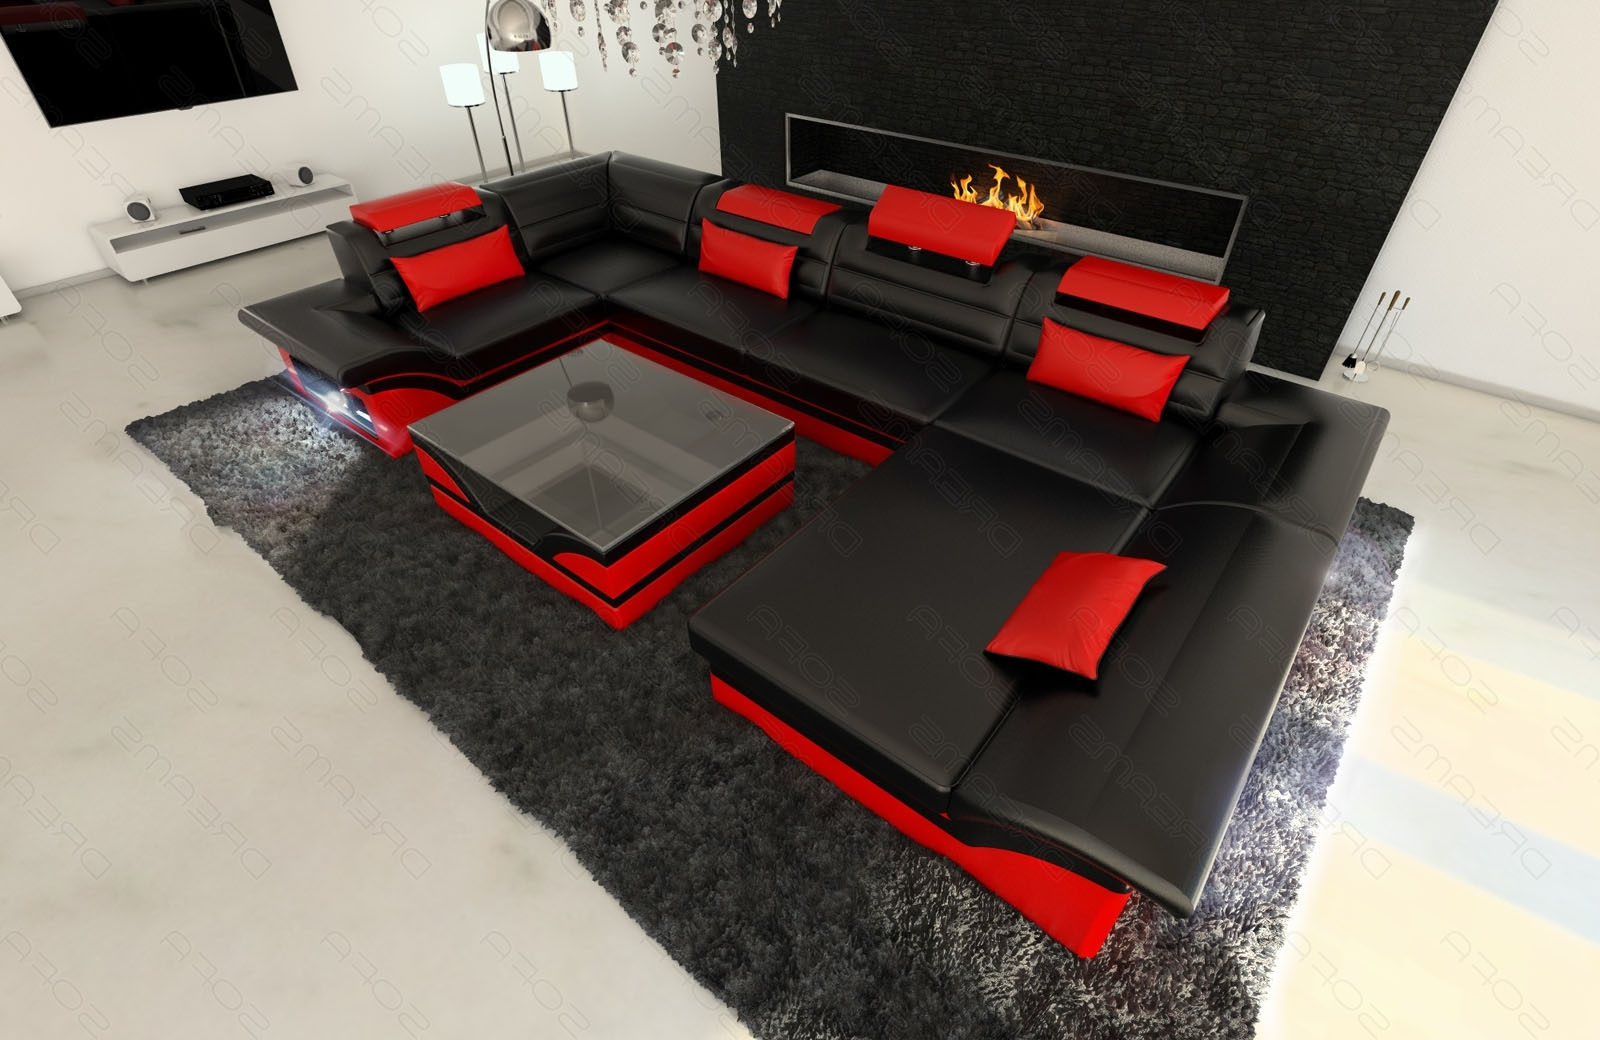 Current Big Leather Sectional Sofa Atlanta With Led Lights U Shape Couch With Red And Black Sofas (View 16 of 20)